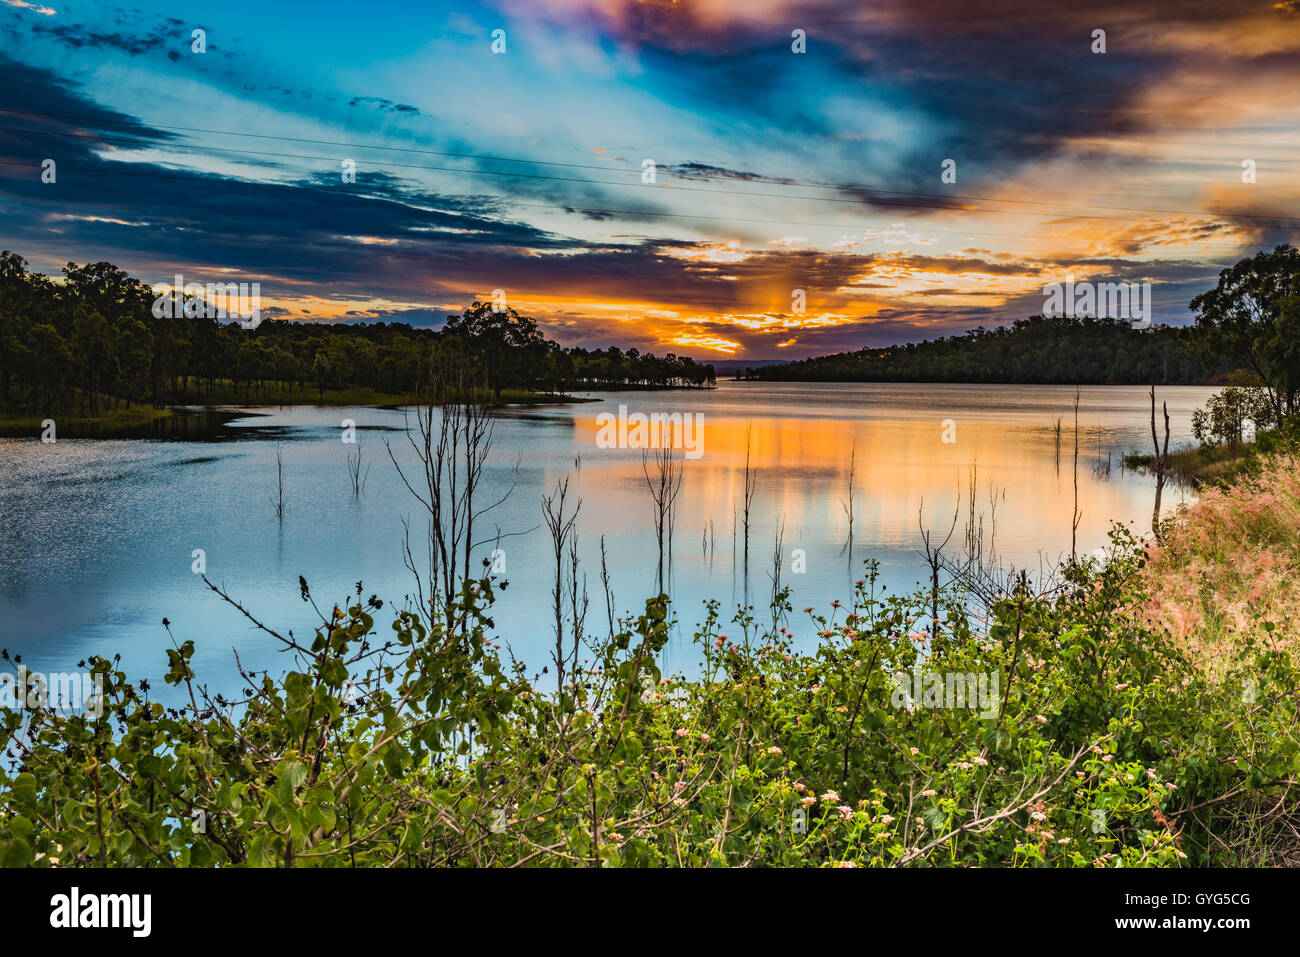 Wivenhoe Dam across Brisbane River at sunset - Stock Image